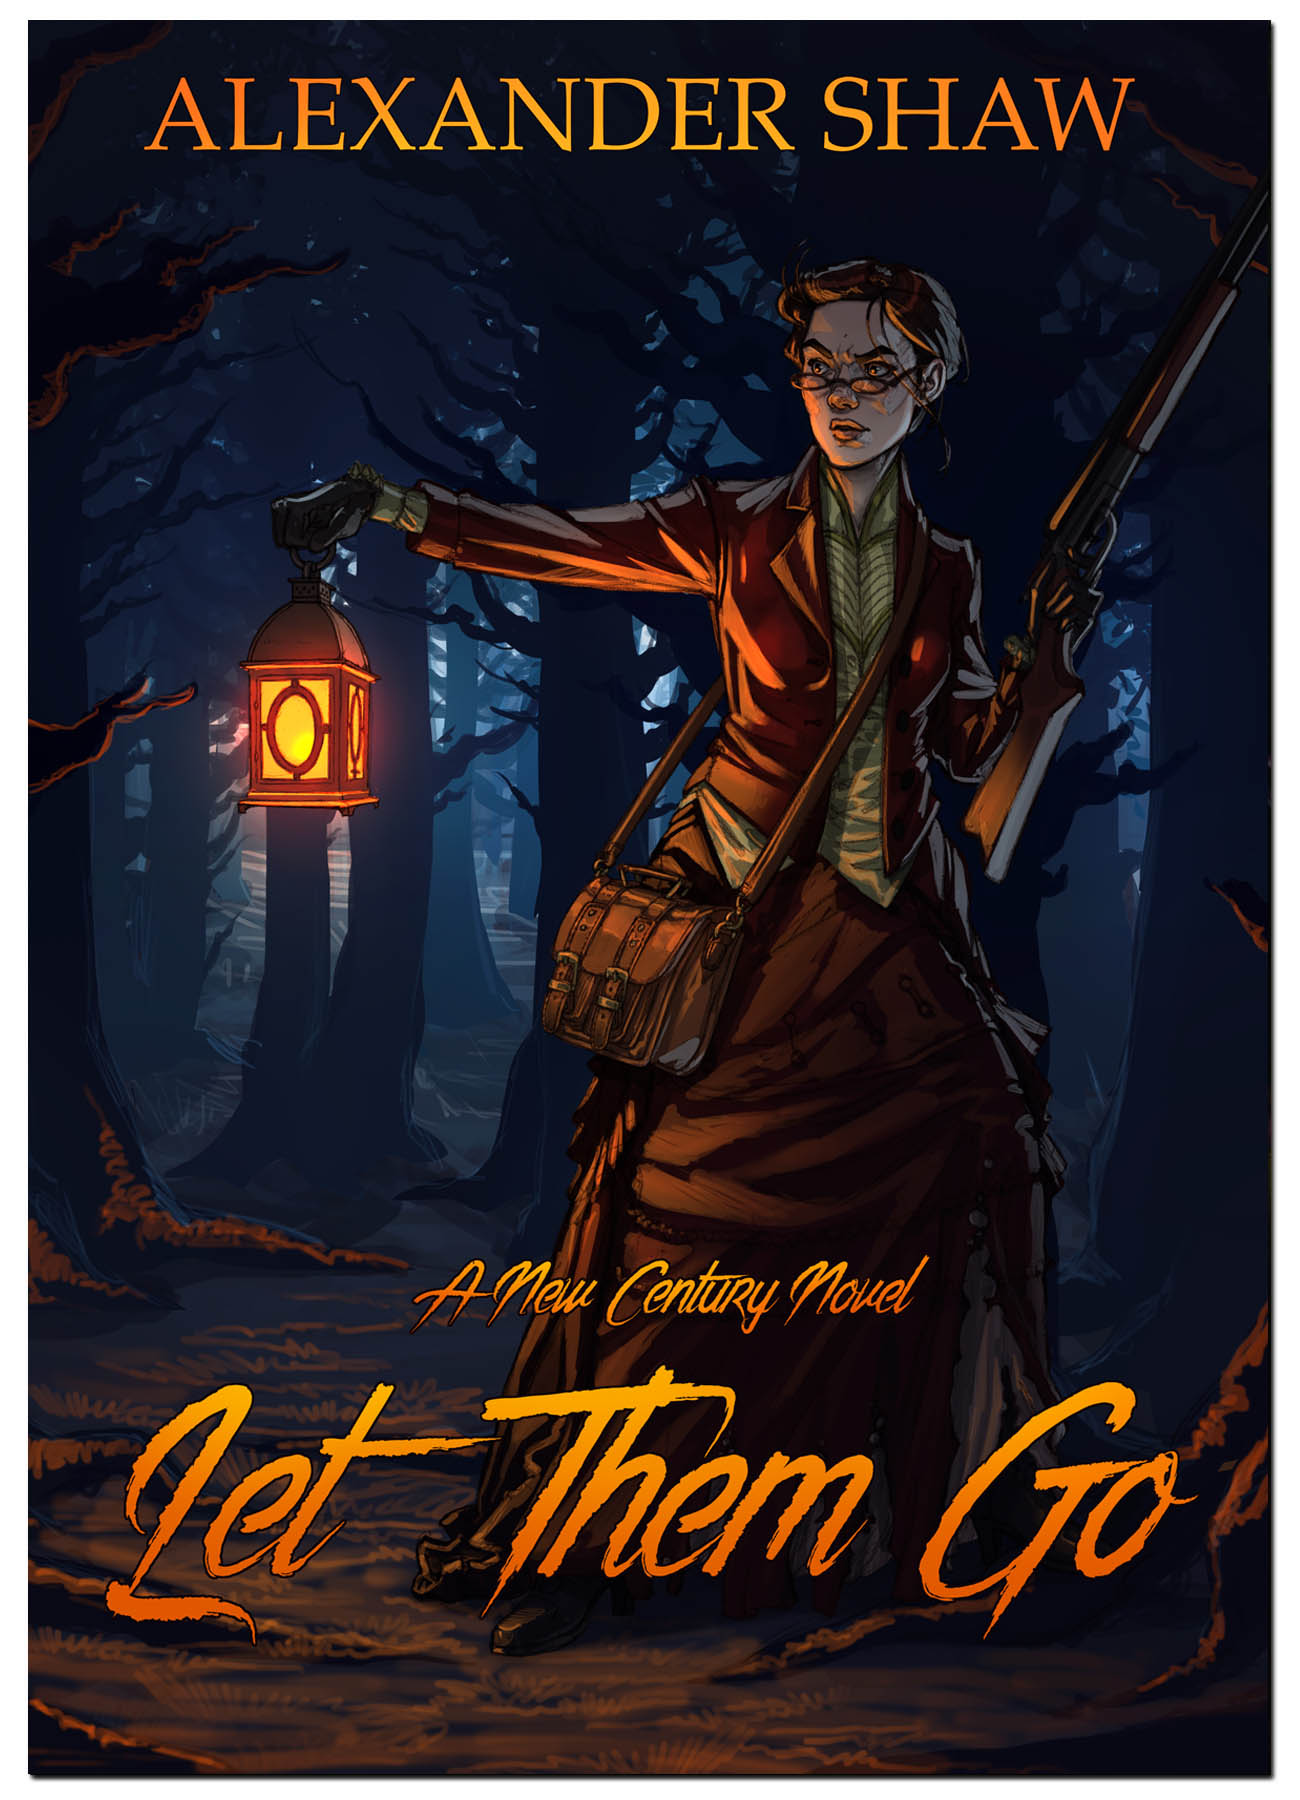 When a Man's world falls to pieces, where can a Woman stand? - A remote and ancient house in Cornwall, 1872. Rebecca Wolverton just wants to get the reading of her father's will over and done with, then journey home with her sister, Amanda to run their shop in Bristol… but time is not on their side. It is Halloween; a night when things that are outside will try to get in, and what is inside will try to get out. The two sisters, along with their aunt Cleo, their lawyer Mr Dawson, and Amanda's husband Rafe are in for the worst evening of their lives, and not all of them will see the dawn. Let Them Go is a gripping, mysterious Gothic romance, as well as a provocative commentary from the writer of Secret Rooms, Arlington and the award-winning Tiger's Eye.